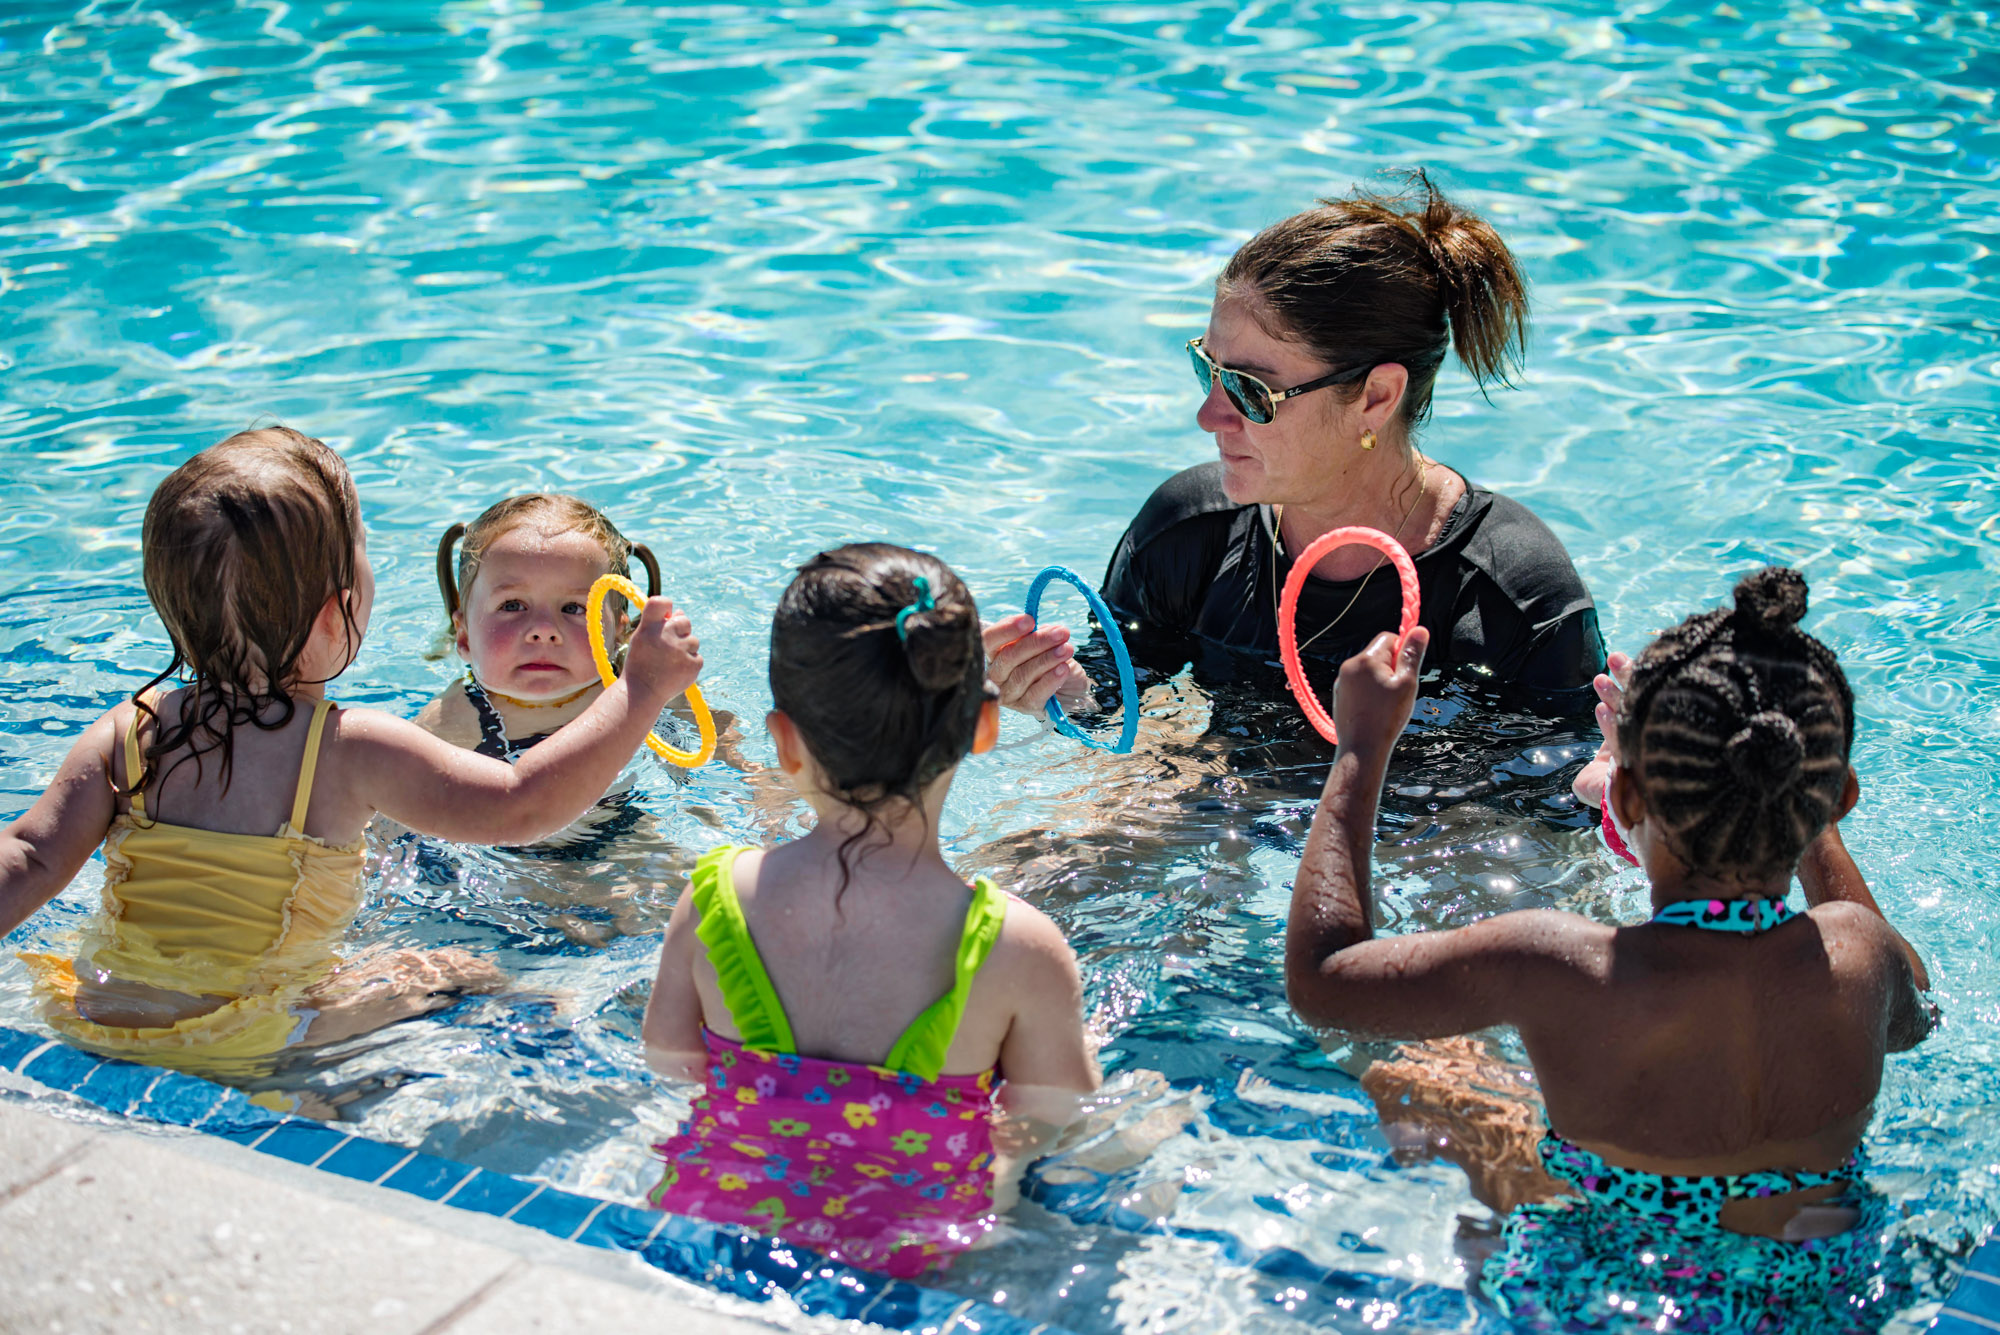 Woman teaching a group of young girls how to swim